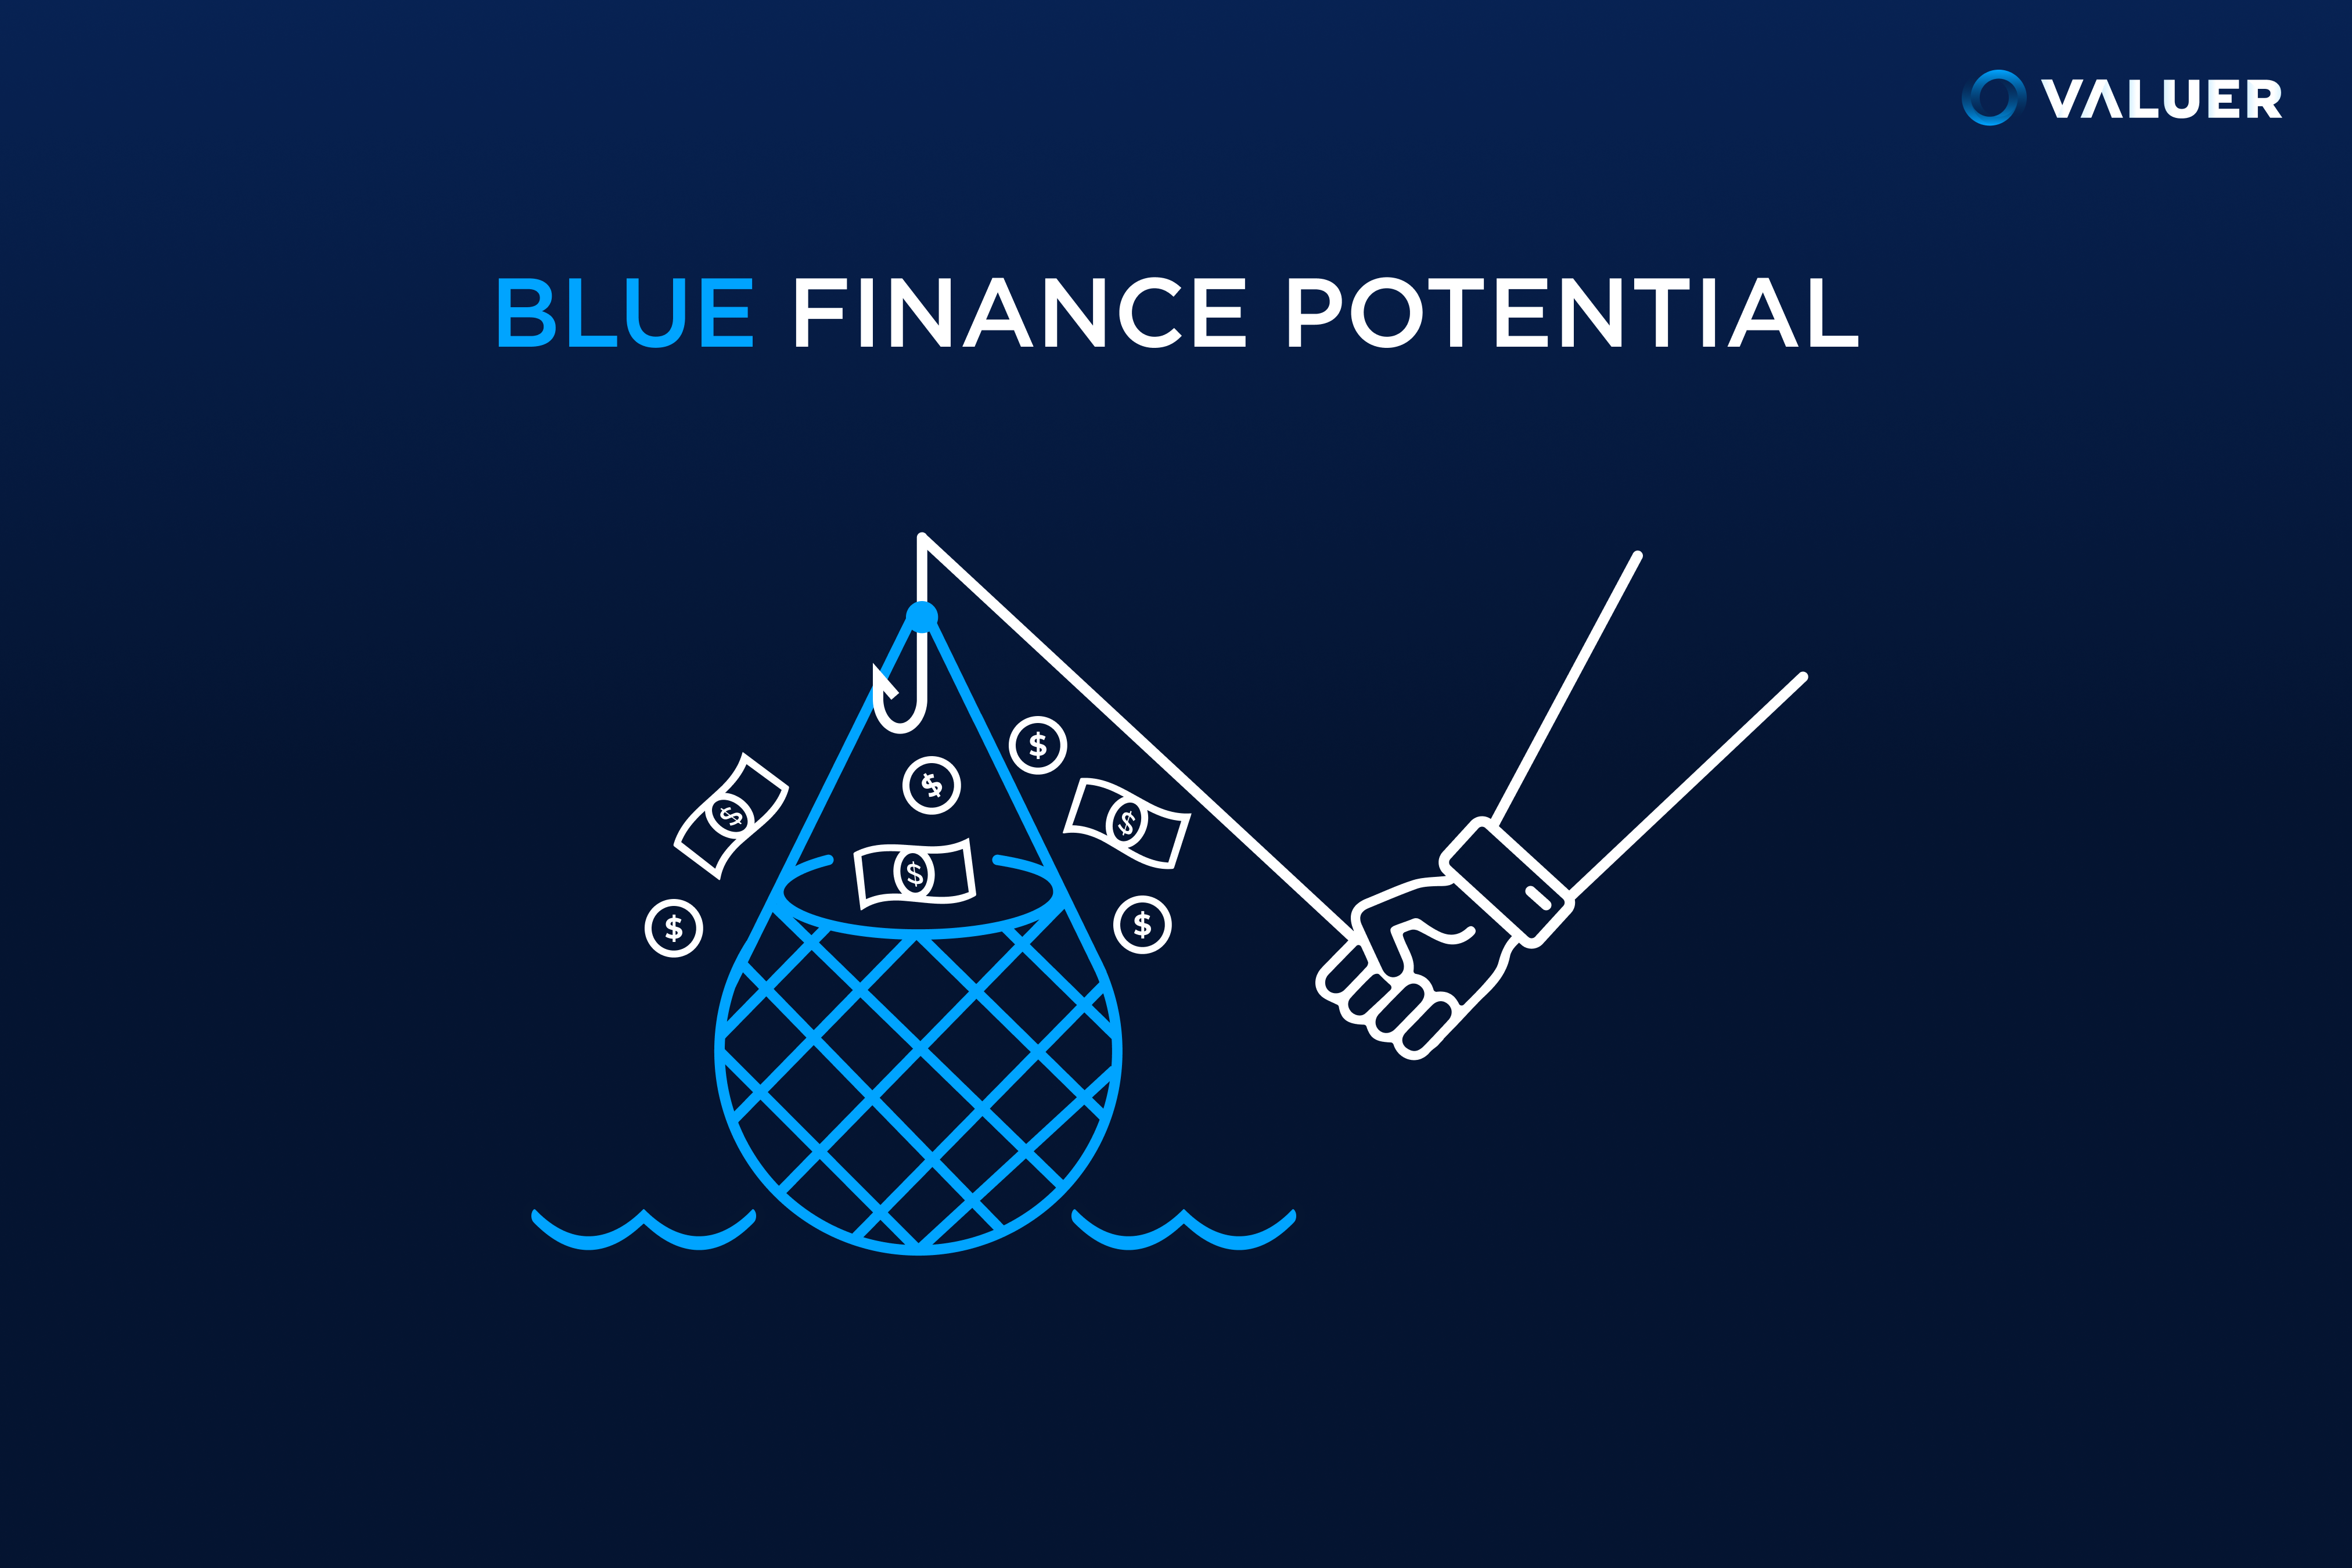 blue finance potential and image of fisherman bringing up net full of cash